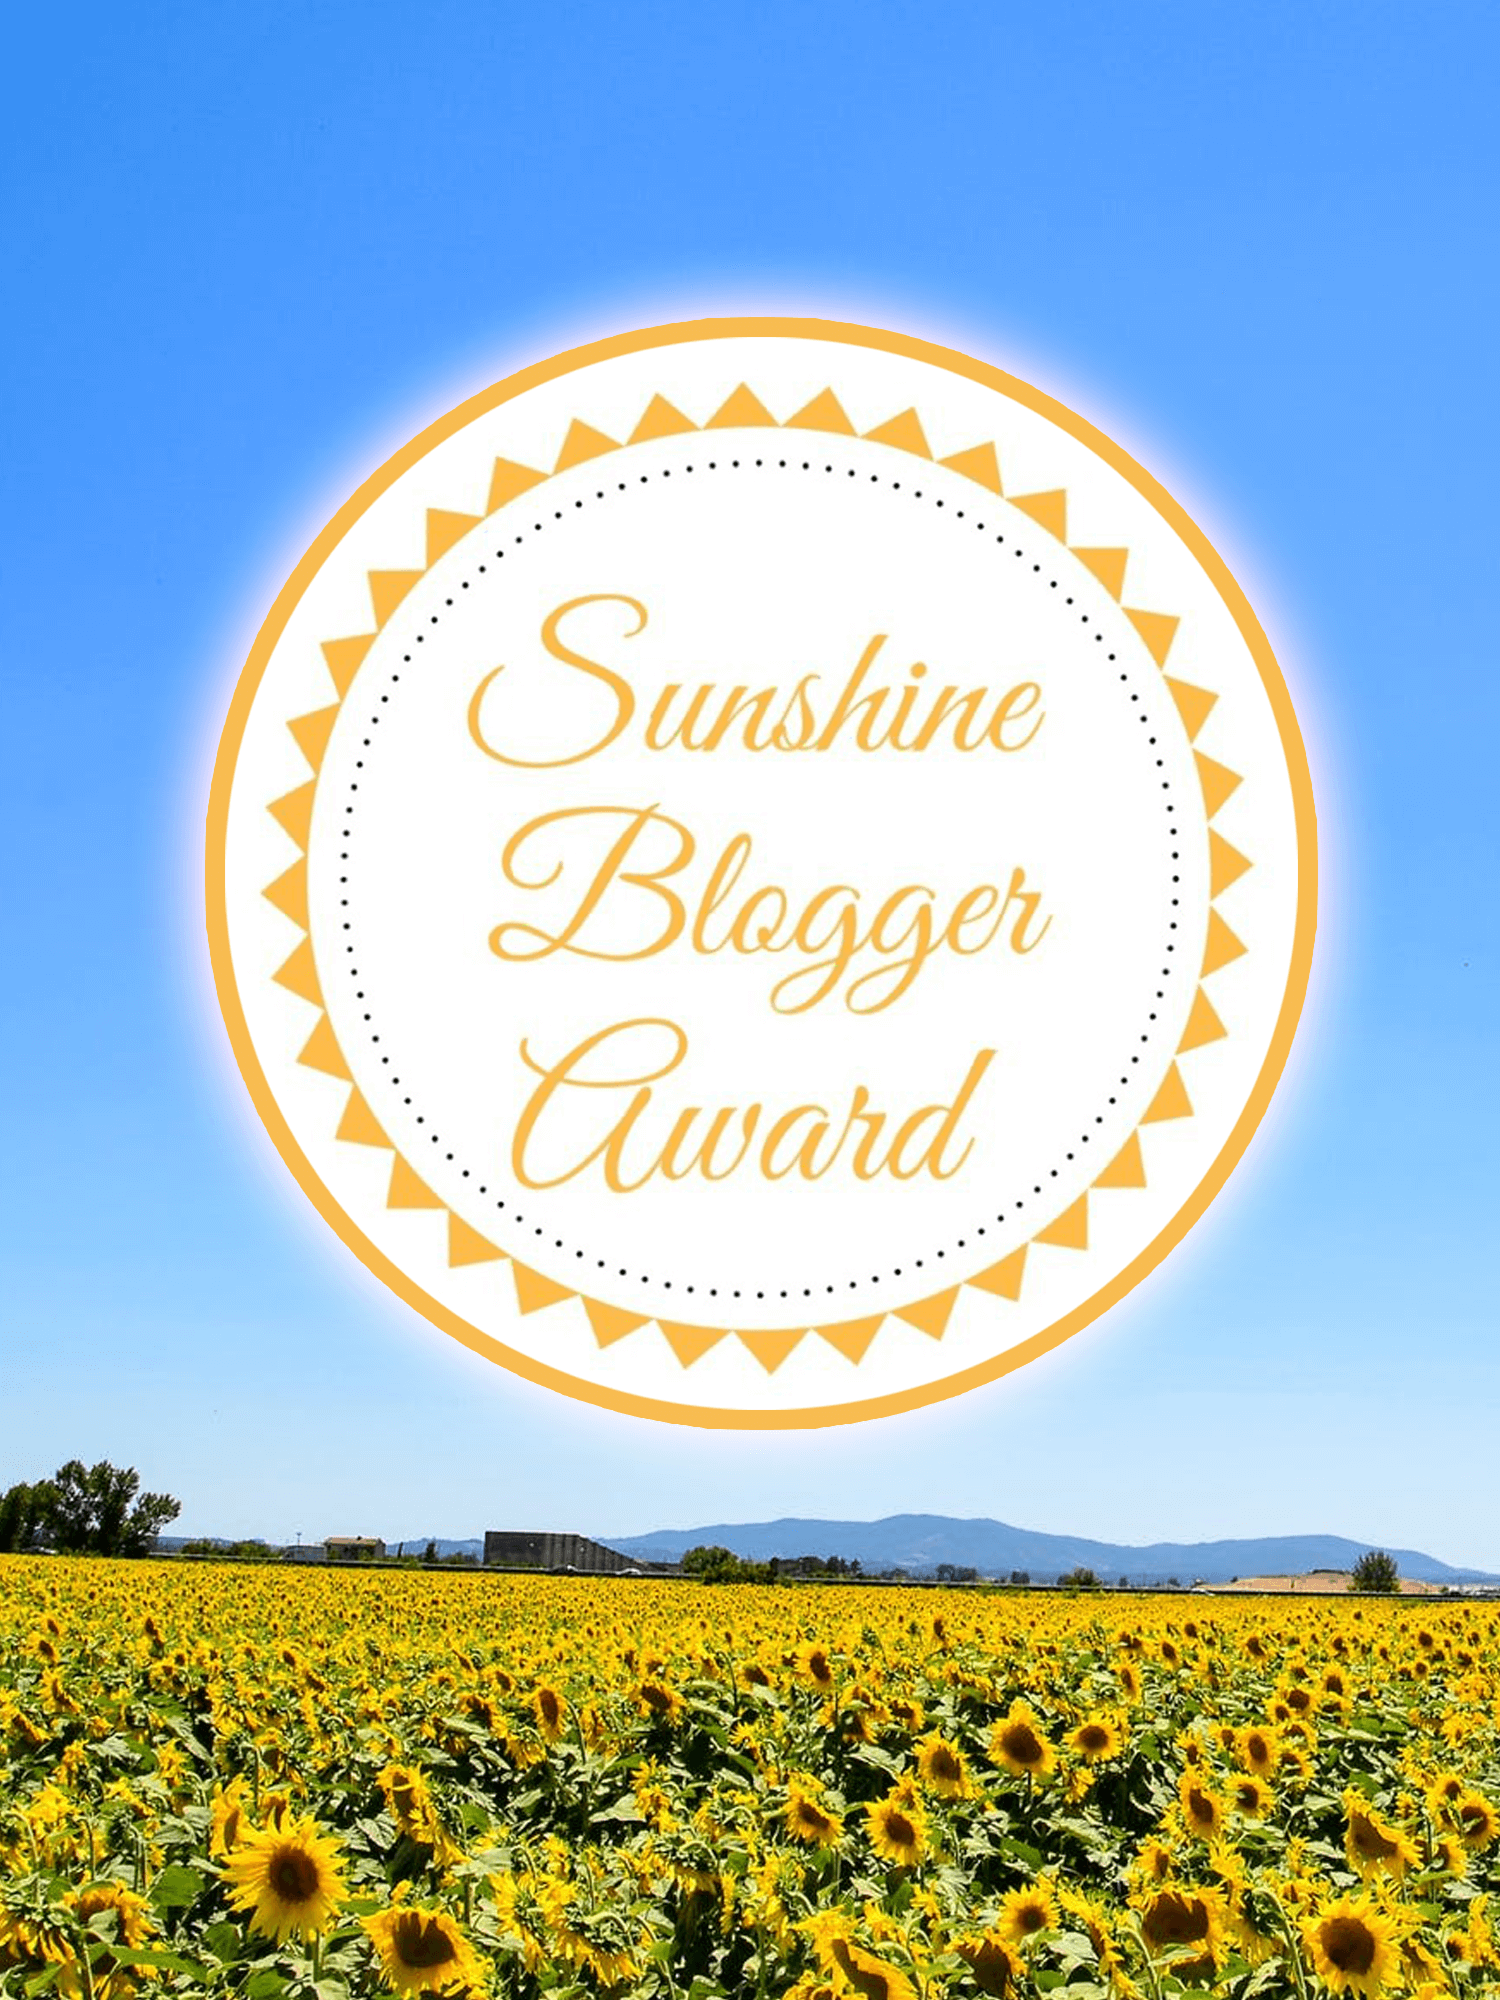 sunshine blogger award - imagine forest